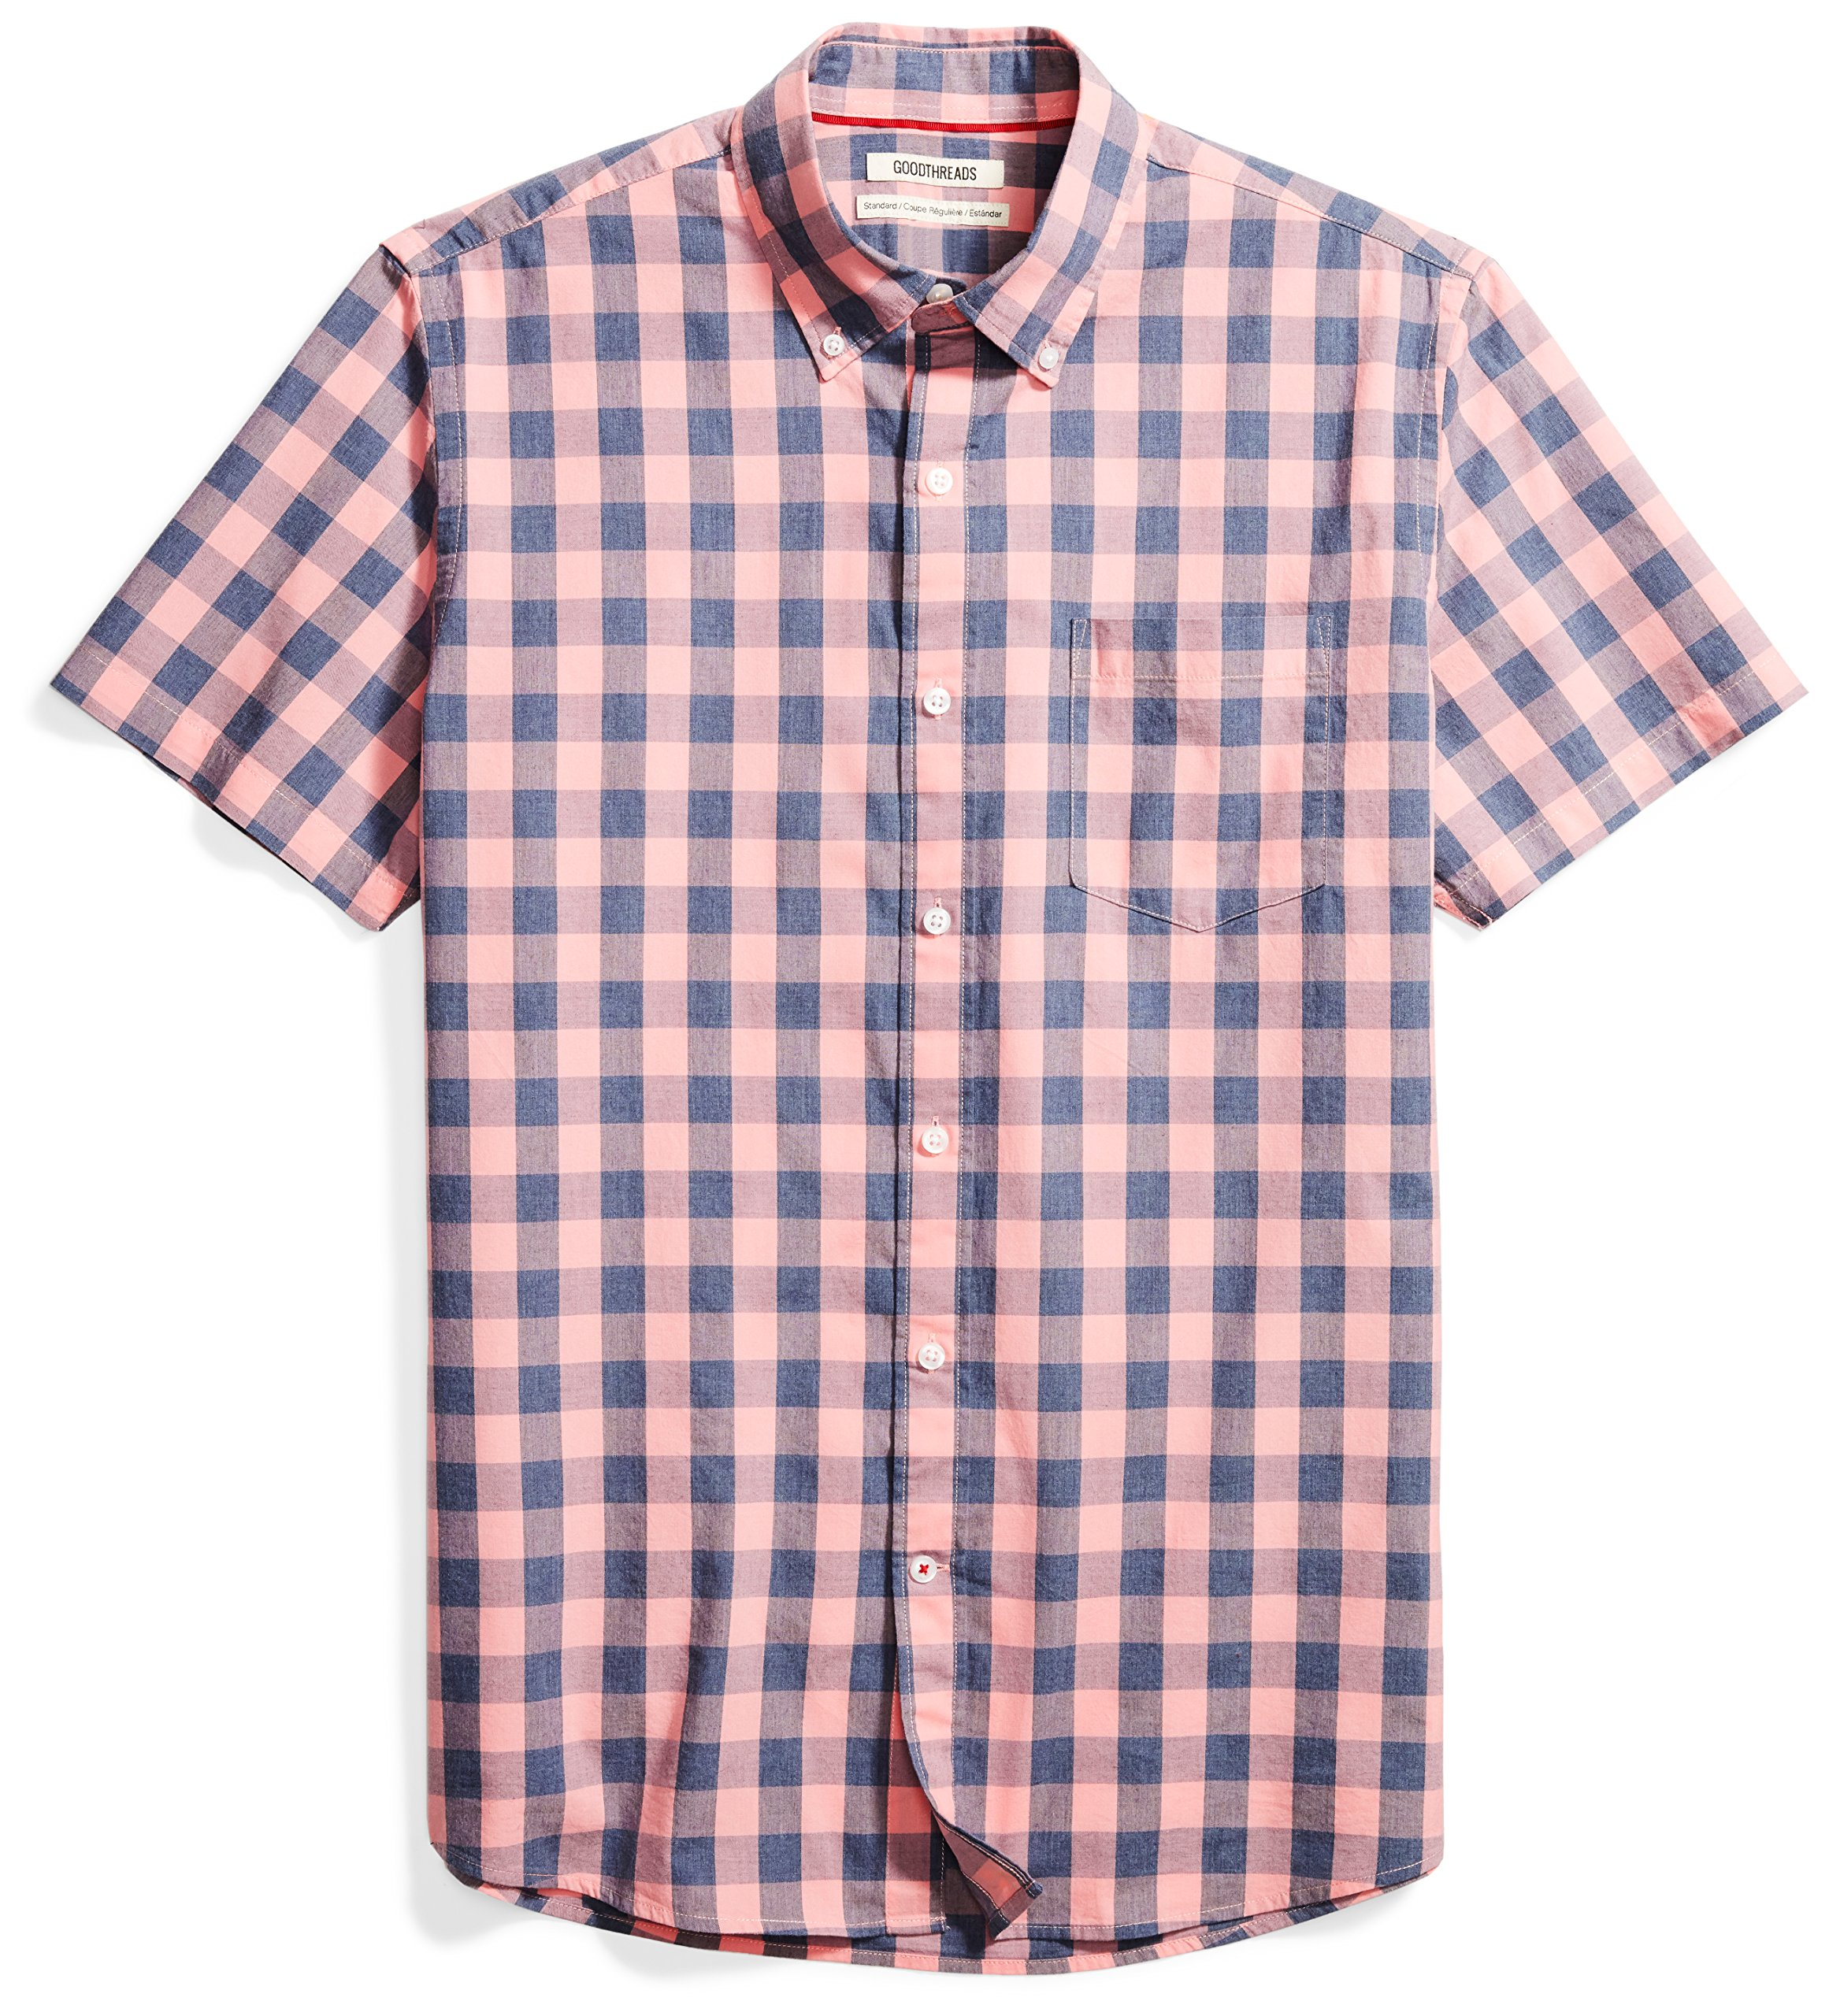 Goodthreads Men's Standard-Fit Short-Sleeve Heathered Scale Check Shirt, Pink/Blue, Large by Goodthreads (Image #1)